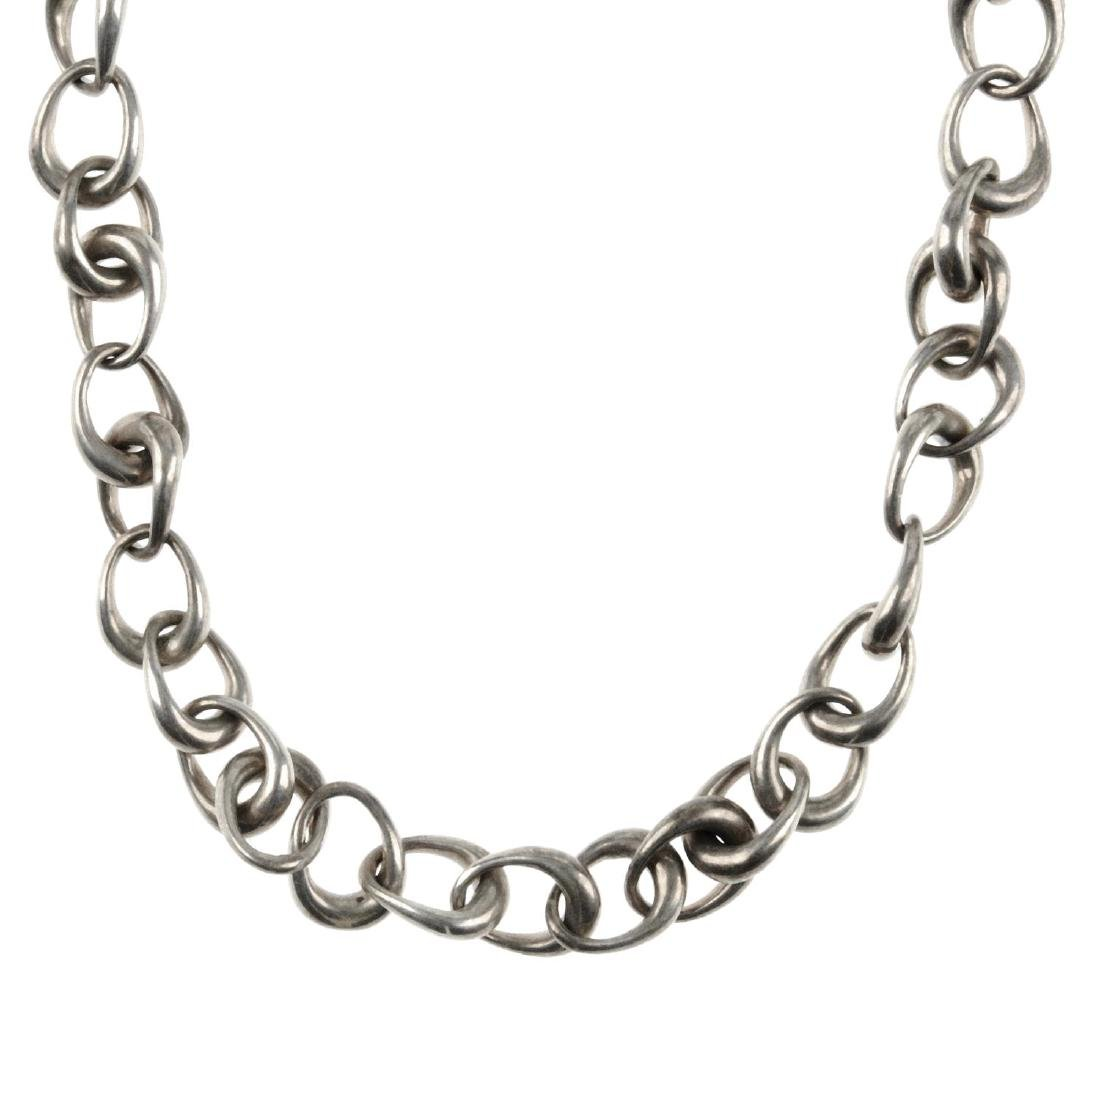 GEORG JENSEN - a necklace. Designed as a series of